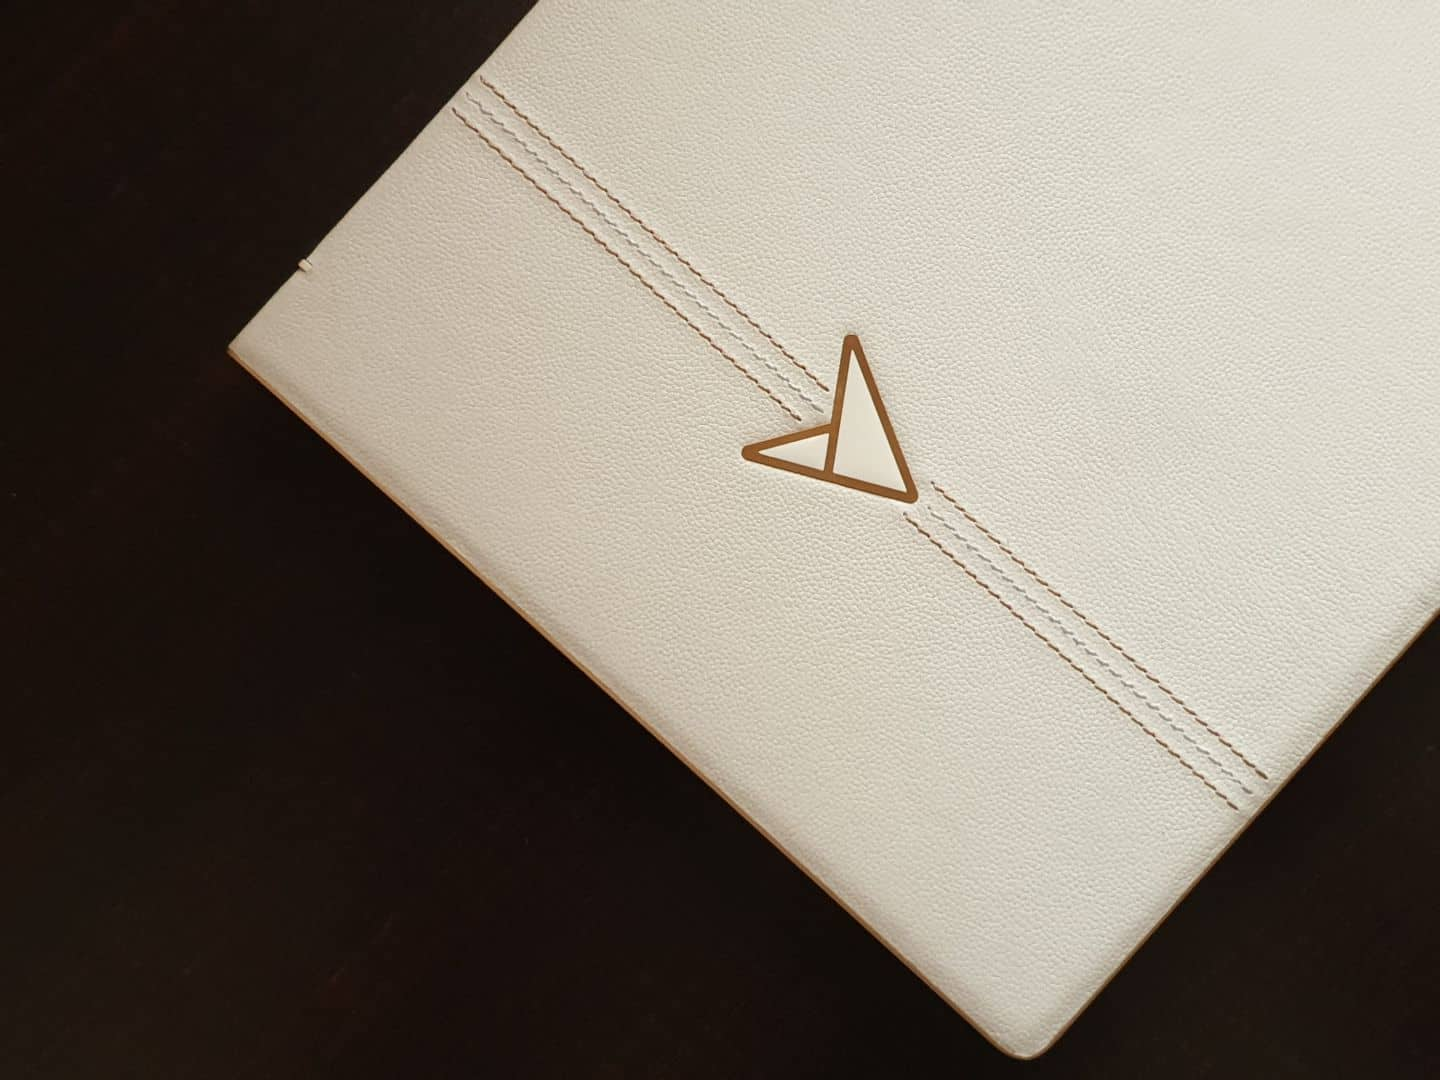 ASUS Zenbook Edition 30 UX334FL Review - Luxury at its Finest! - 3